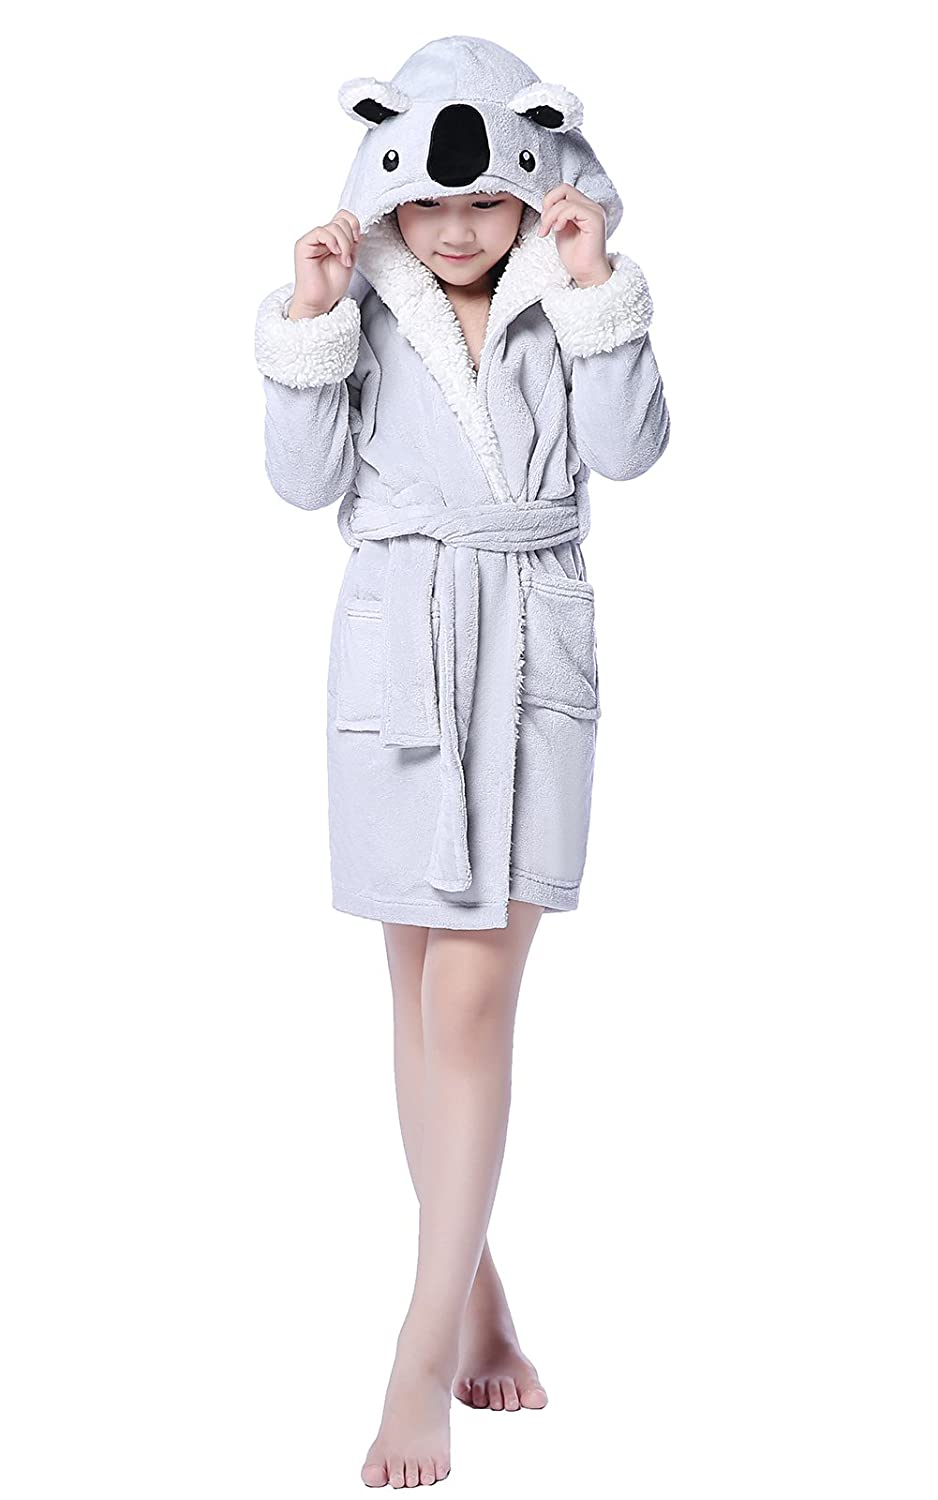 NEWCOSPLAY Children Grey Koala Bathrobe Robe Cosplay Hooded Pajamas 8-10Y, Grey Koala